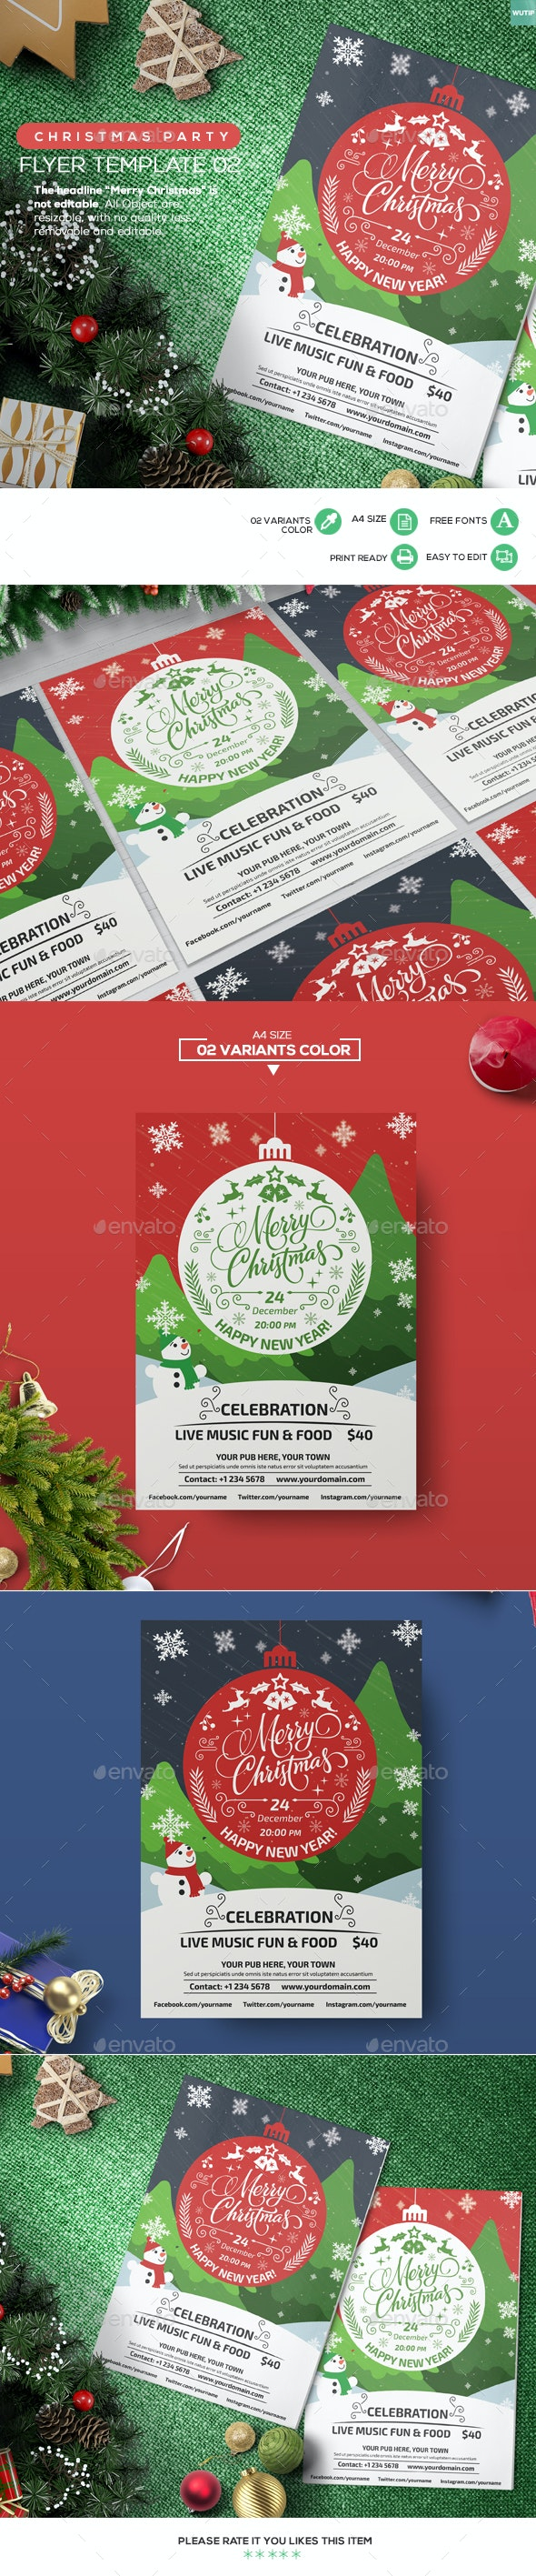 Christmas Party - Flyer Template 02 - Holidays Events